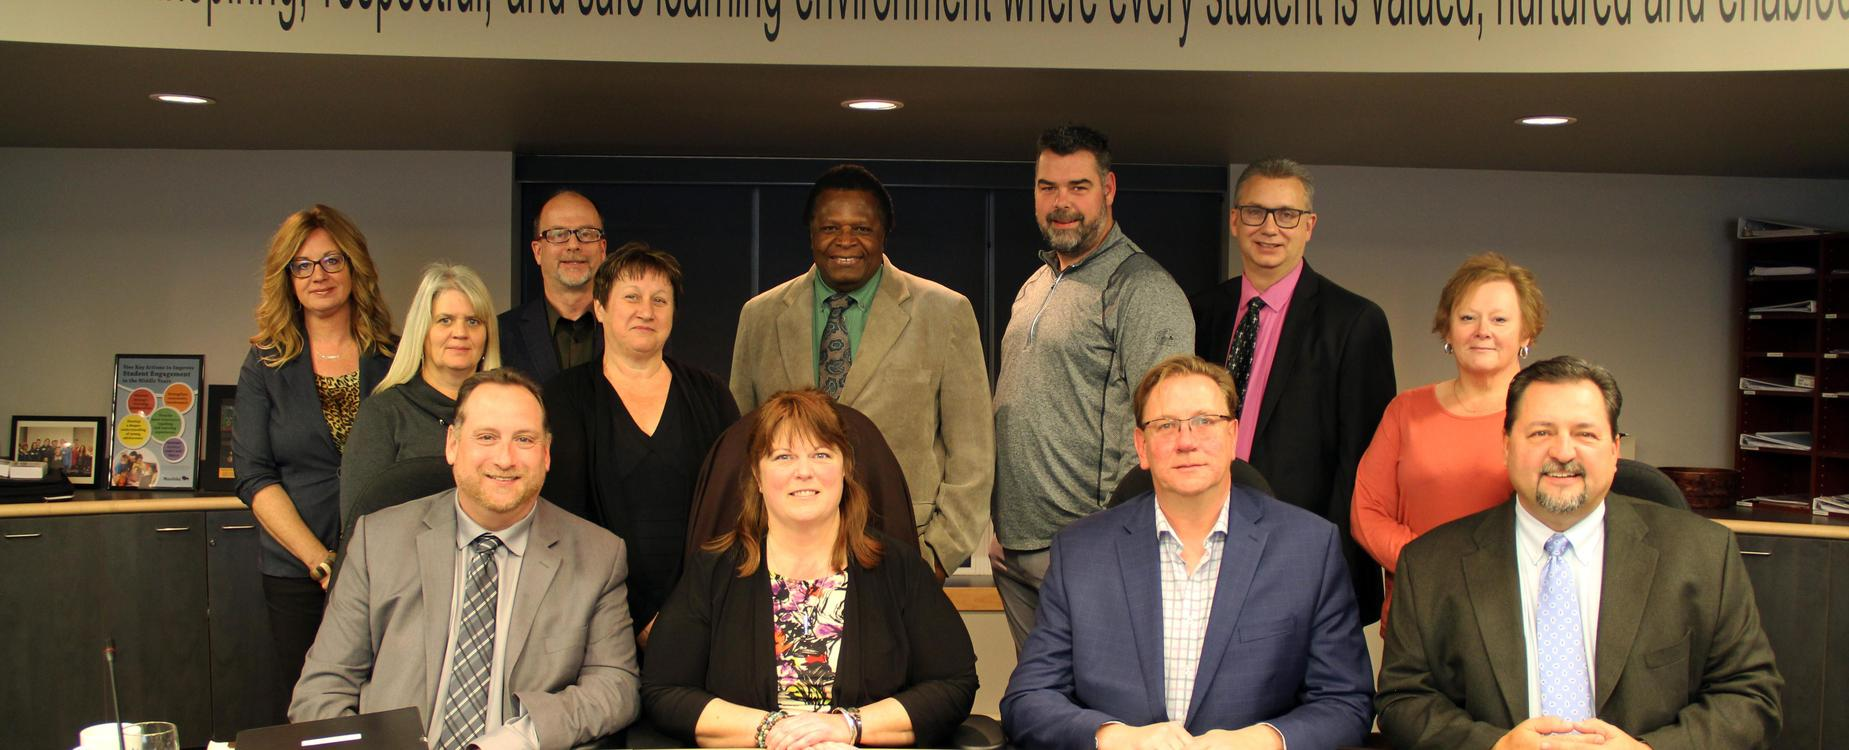 MVSD Board of Trustees and Senior Administration 2019-2020